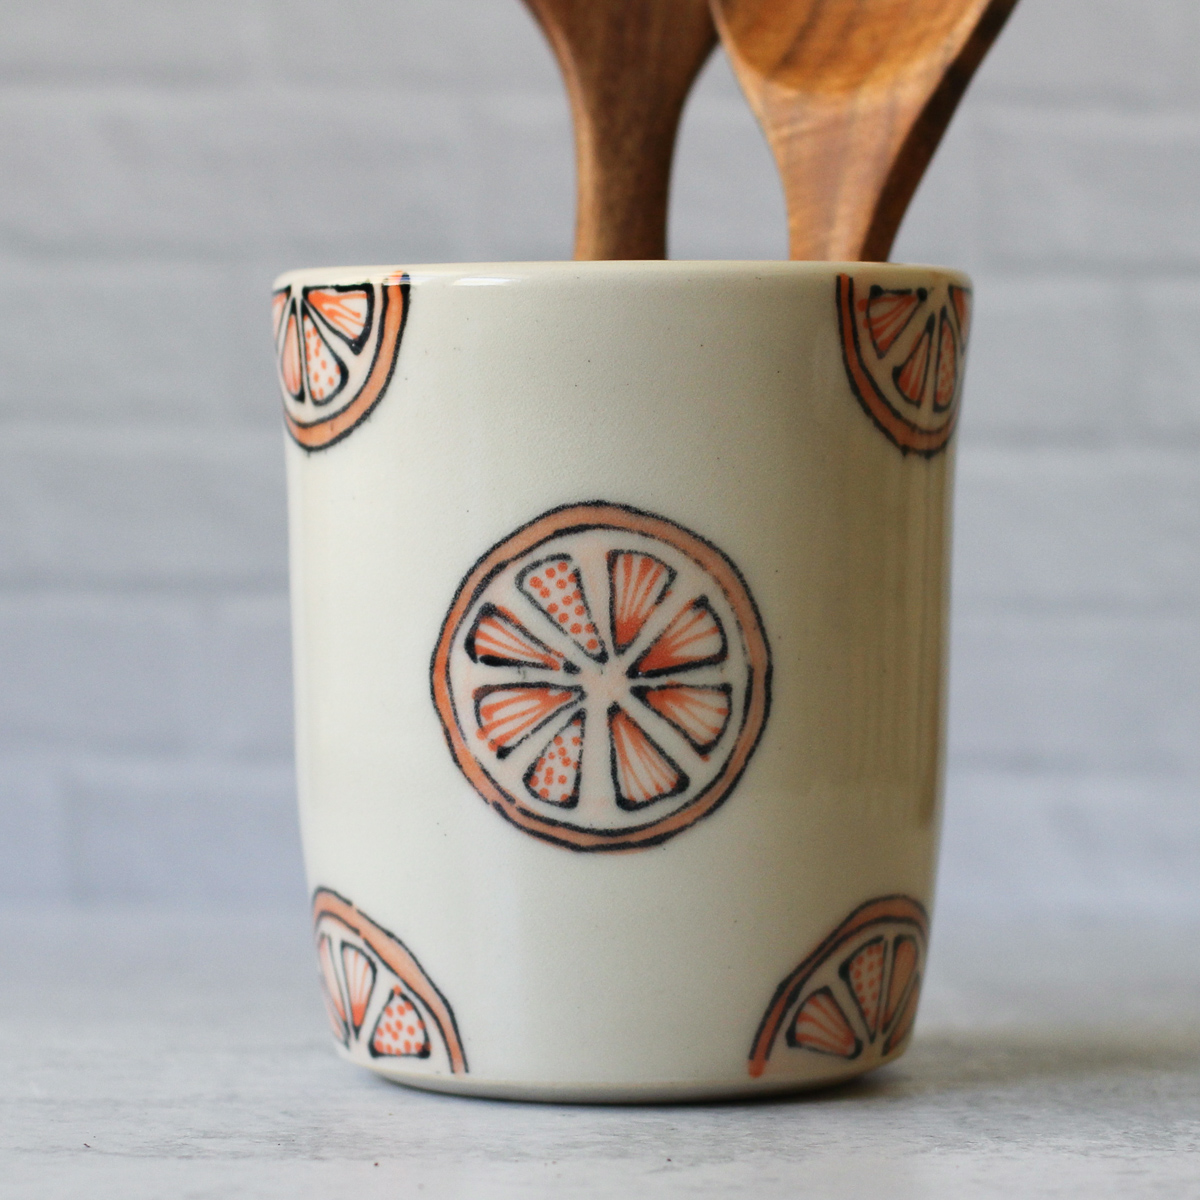 Medium utensil holder - oranges